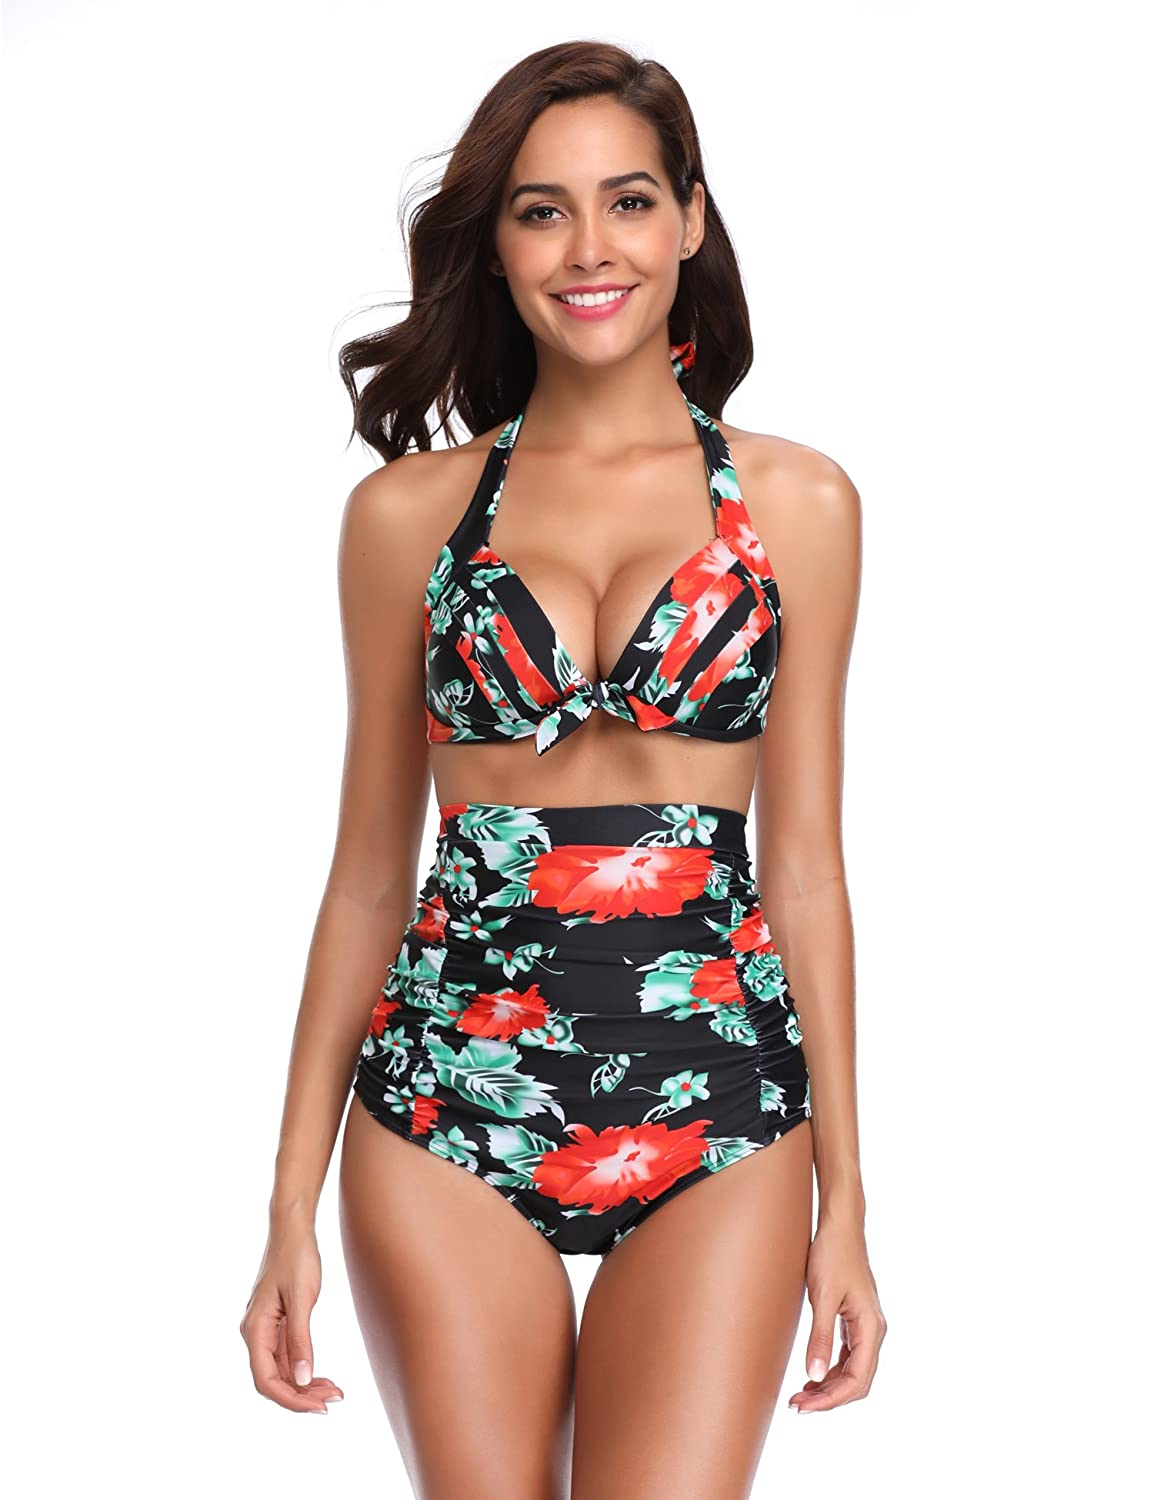 b1f9ae00ea693 HALTER FLORAL BIKINI TOP: Plus size swimsuits for women feature halter neck  and self ties at back for a relaxed fit. Push up bikini top is supportive  enough ...